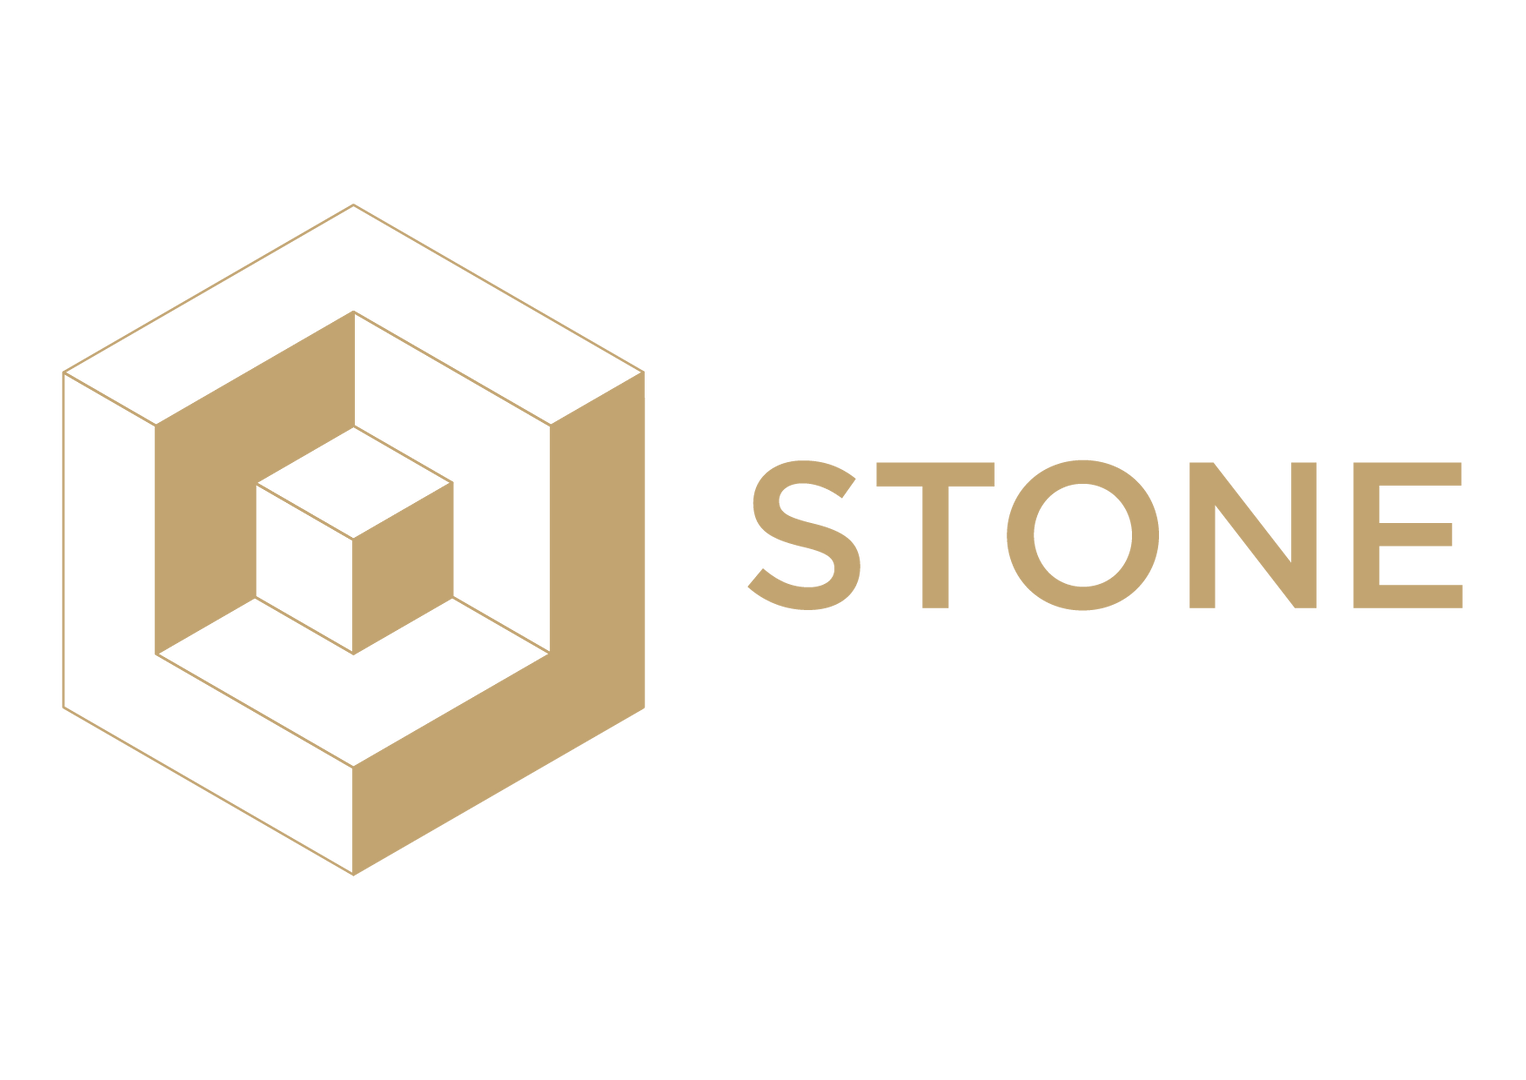 stone capital.png